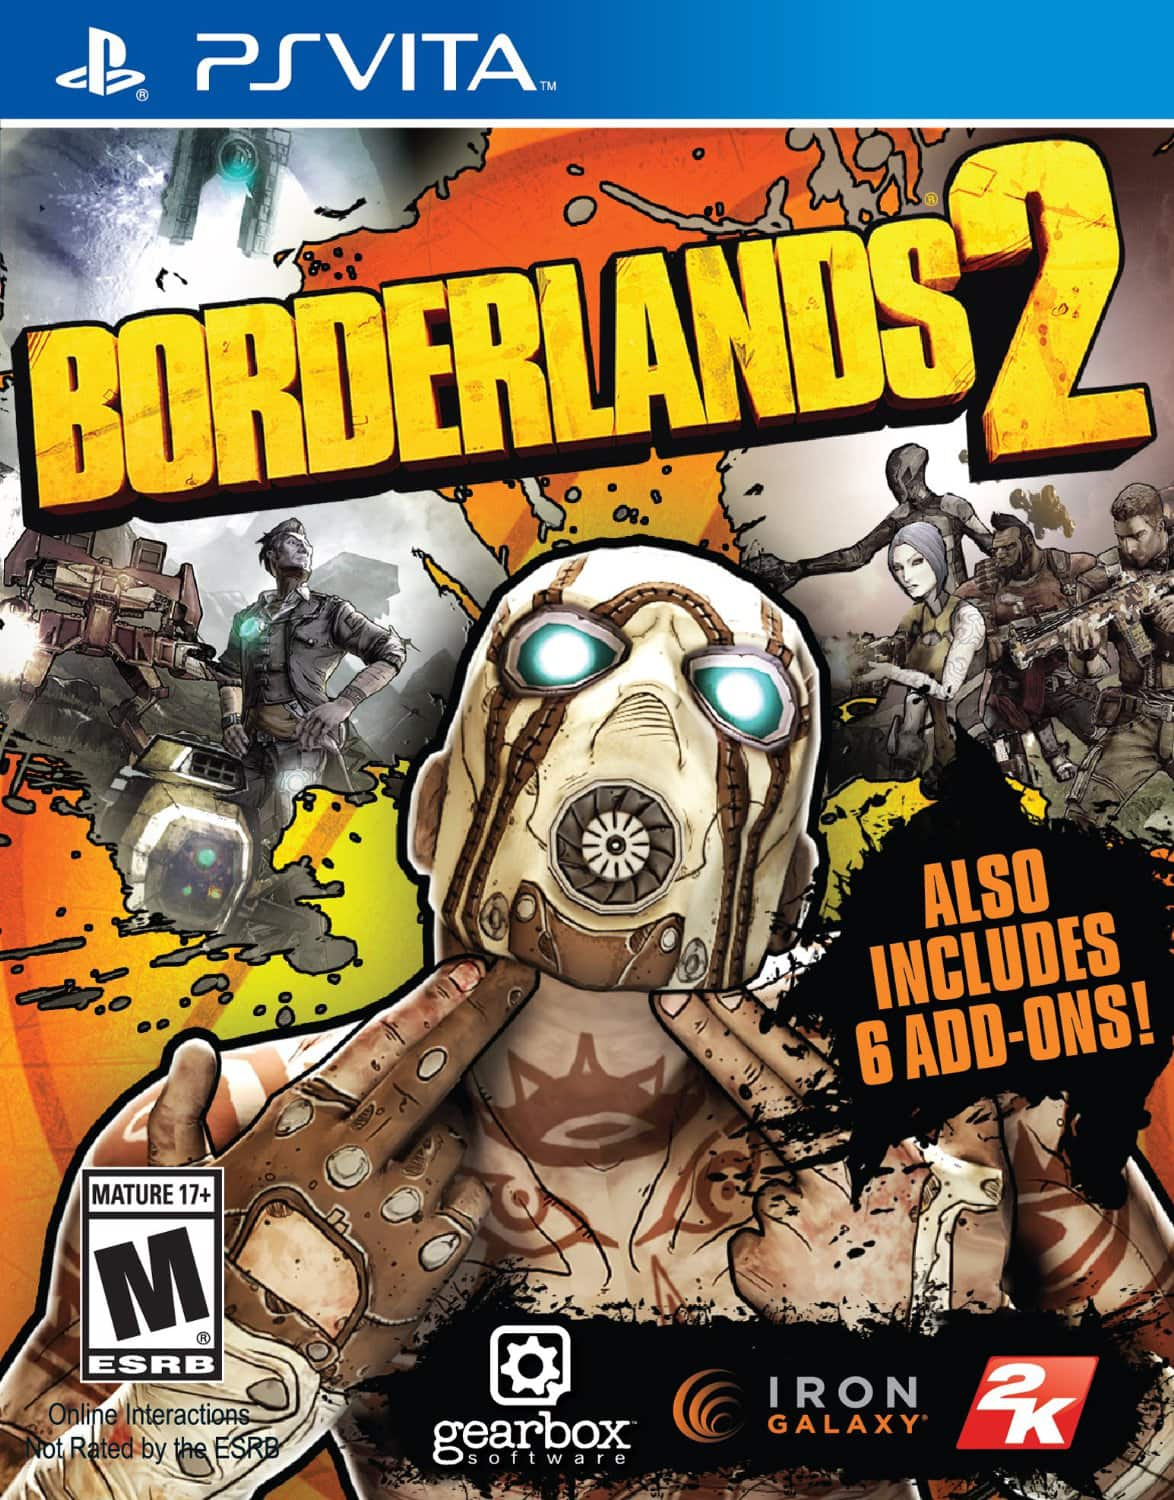 Borderlands 2 - PS Vita - $12.50 (EXCLUSIVELY FOR PRIME MEMBERS)